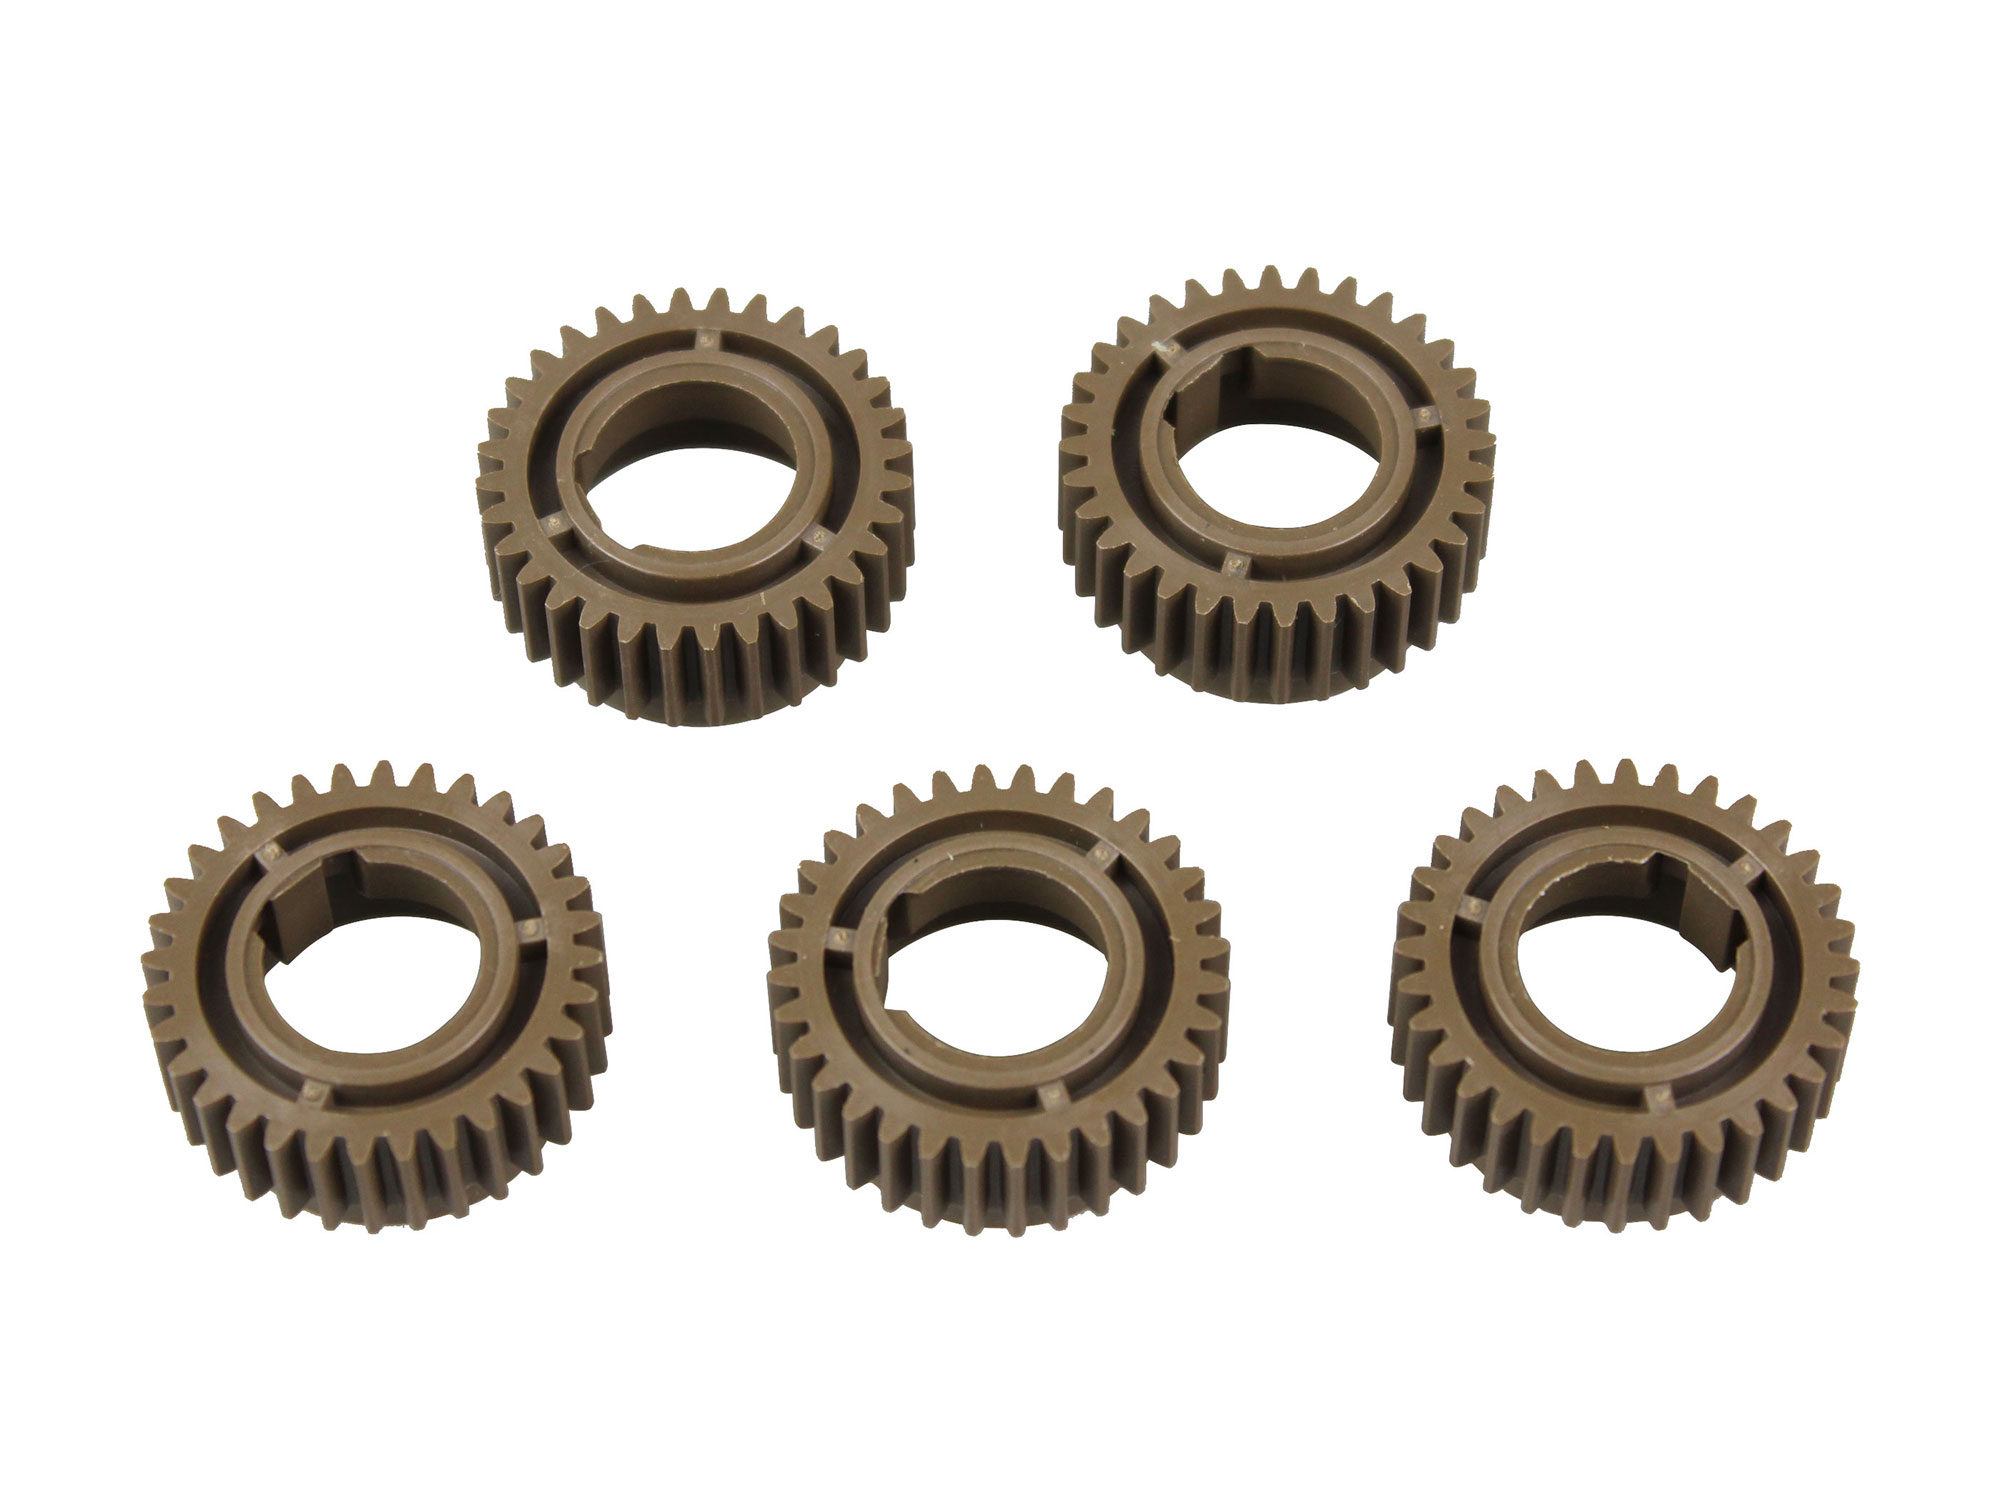 Upper Roller Gear 32T for Kyocera FS-1041/1061DN